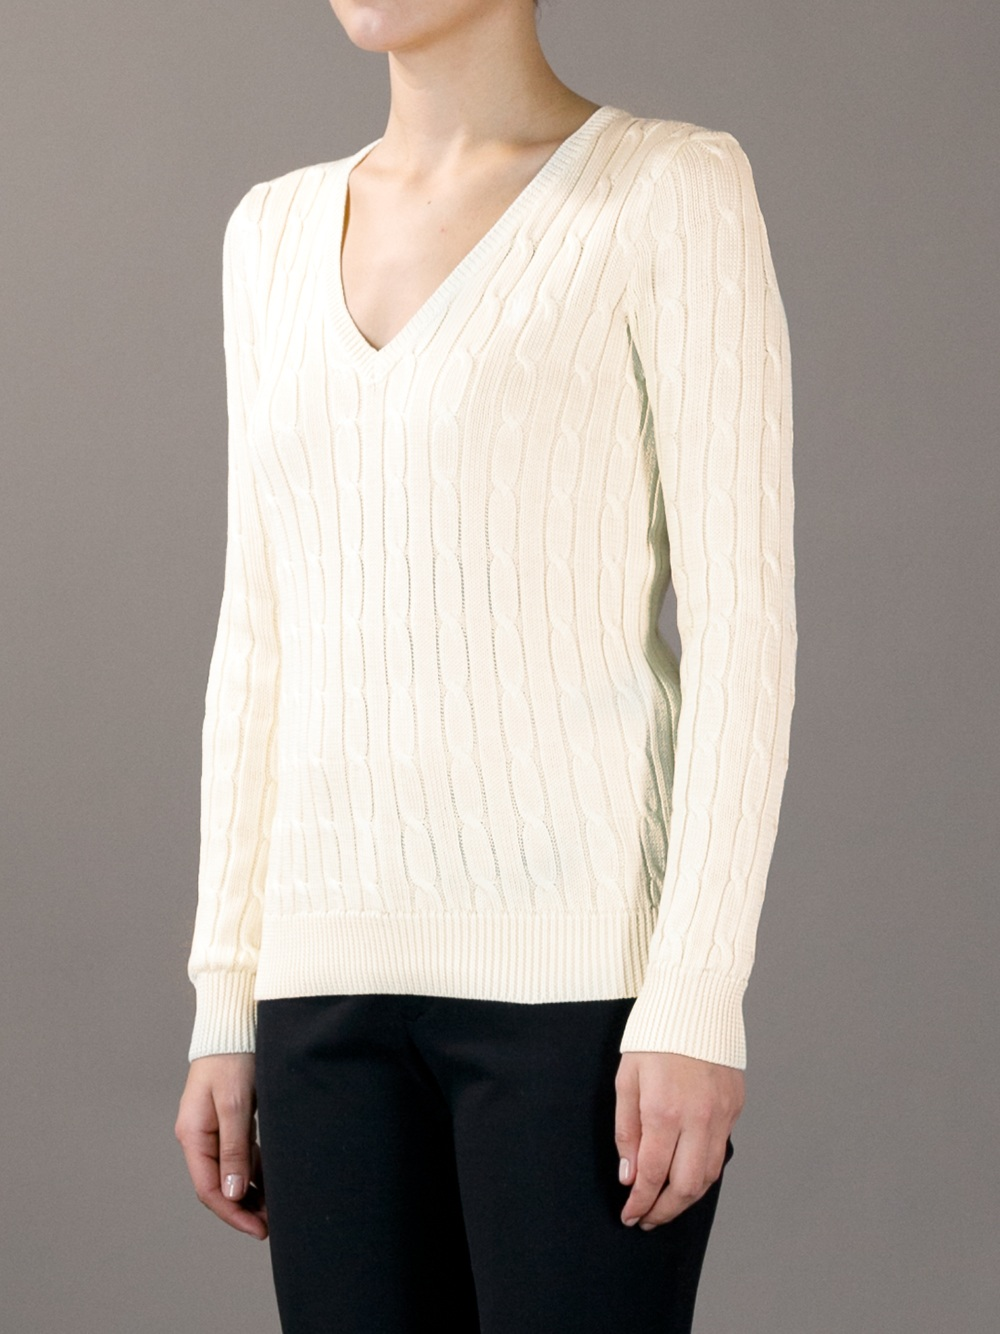 Ralph lauren V-neck Cable Knit Sweater in Natural | Lyst